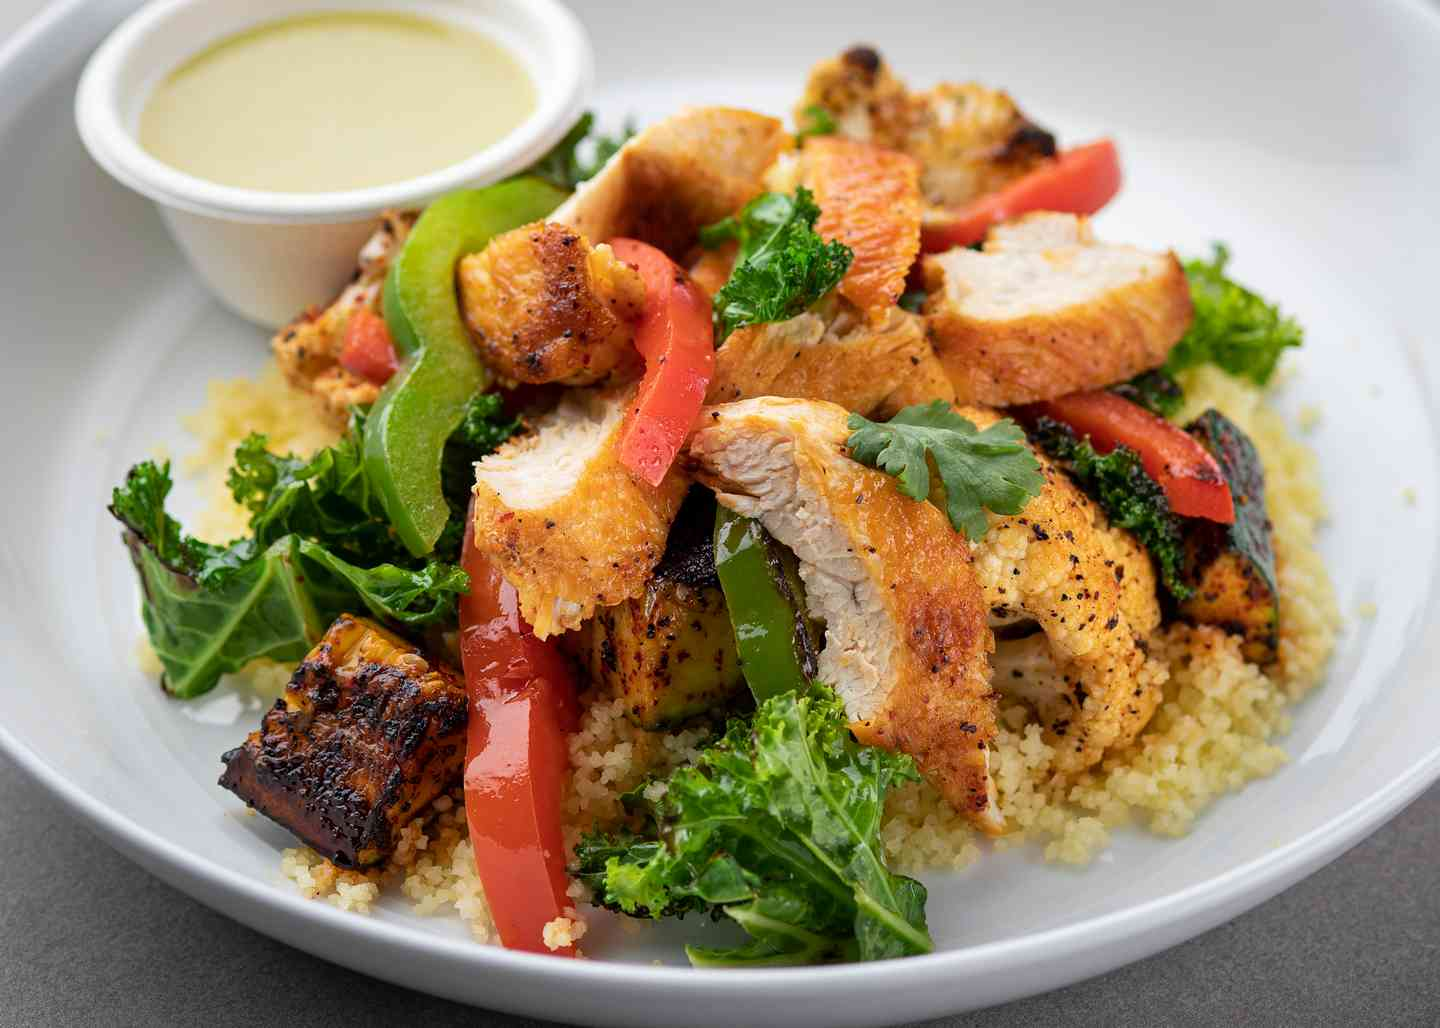 Cauliflower & Smoky Grilled Chicken Bowl 01